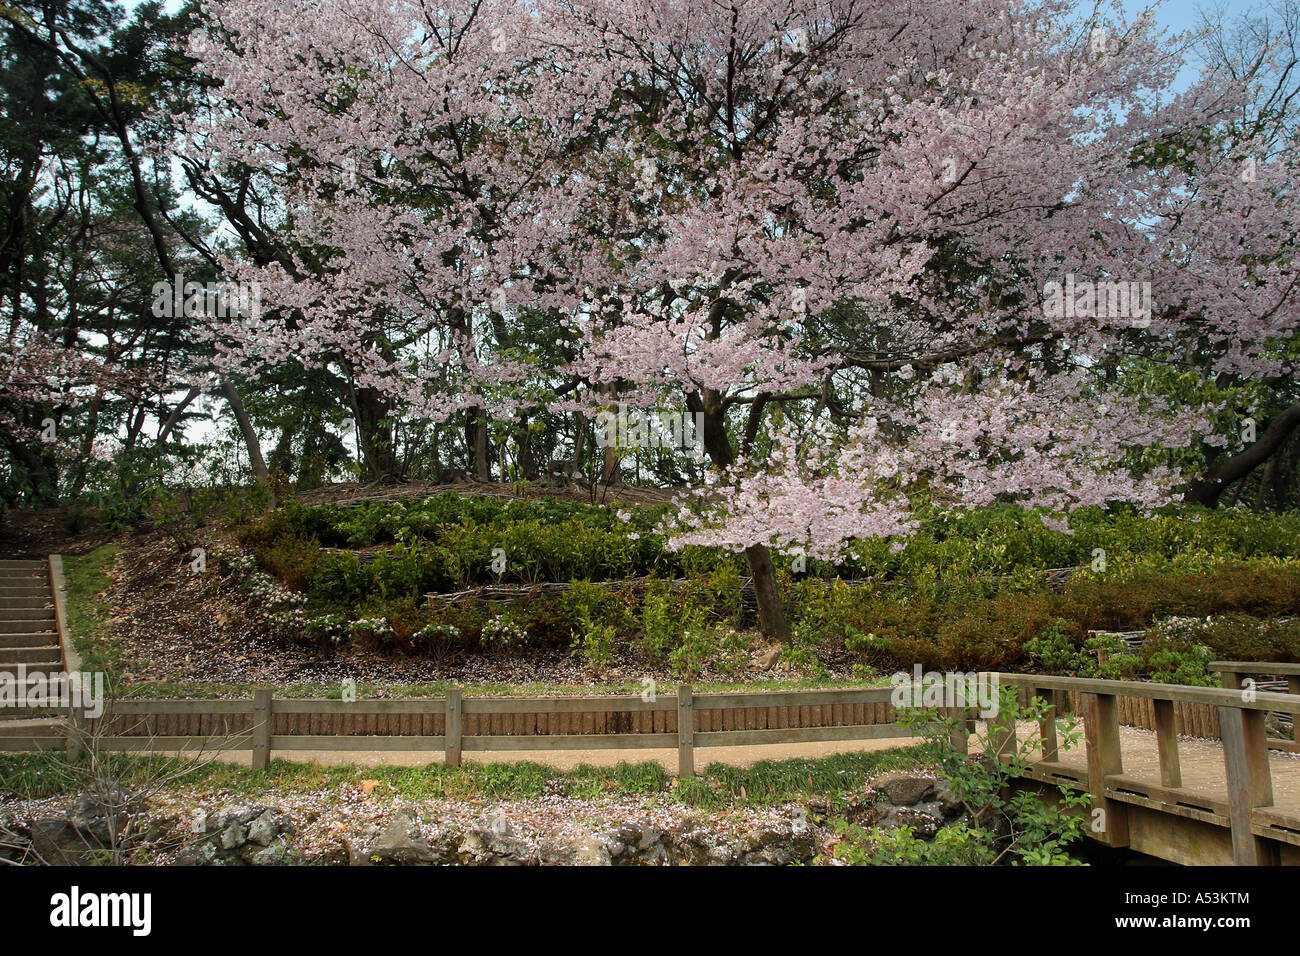 stock photo tokyo japan travel sakura garden pink flower bridge pool bridge landscape